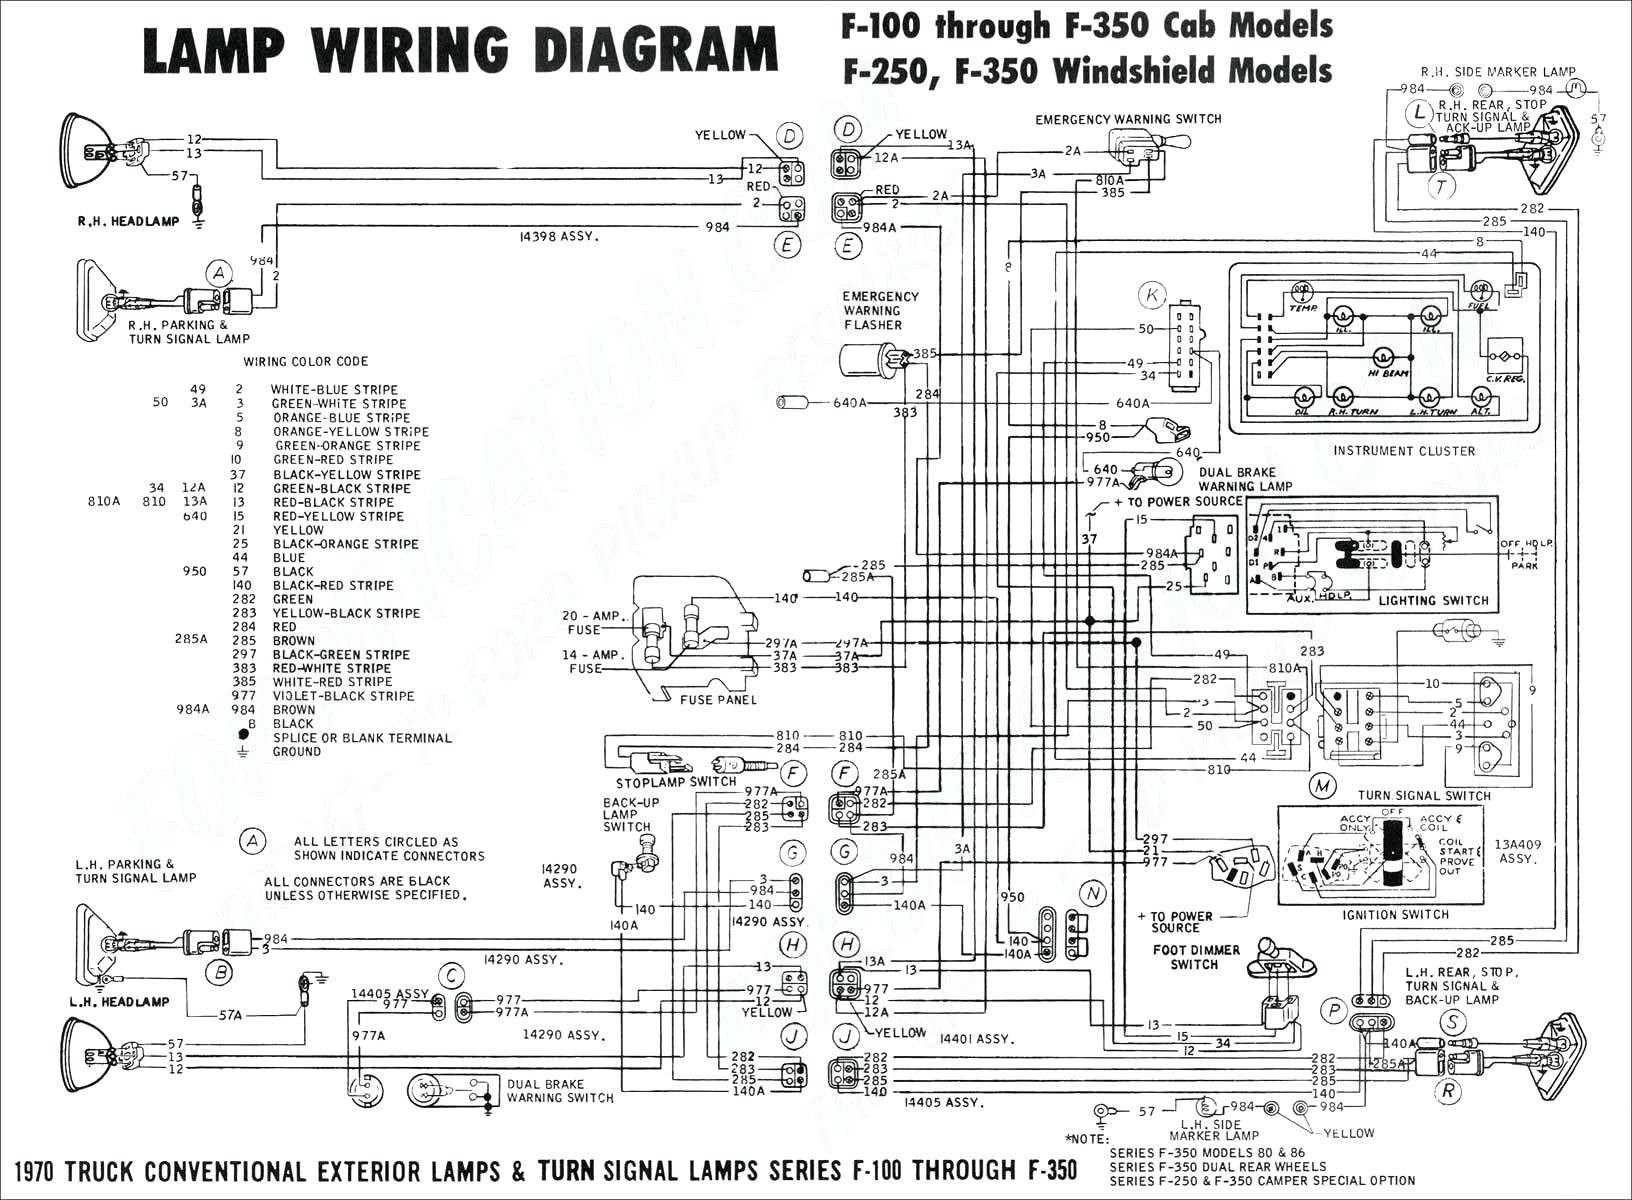 6.7 Powerstroke Wiring Diagrams 1995 ford F 250 Headlight Switch Connector Wiring Schematic Of 6.7 Powerstroke Wiring Diagrams